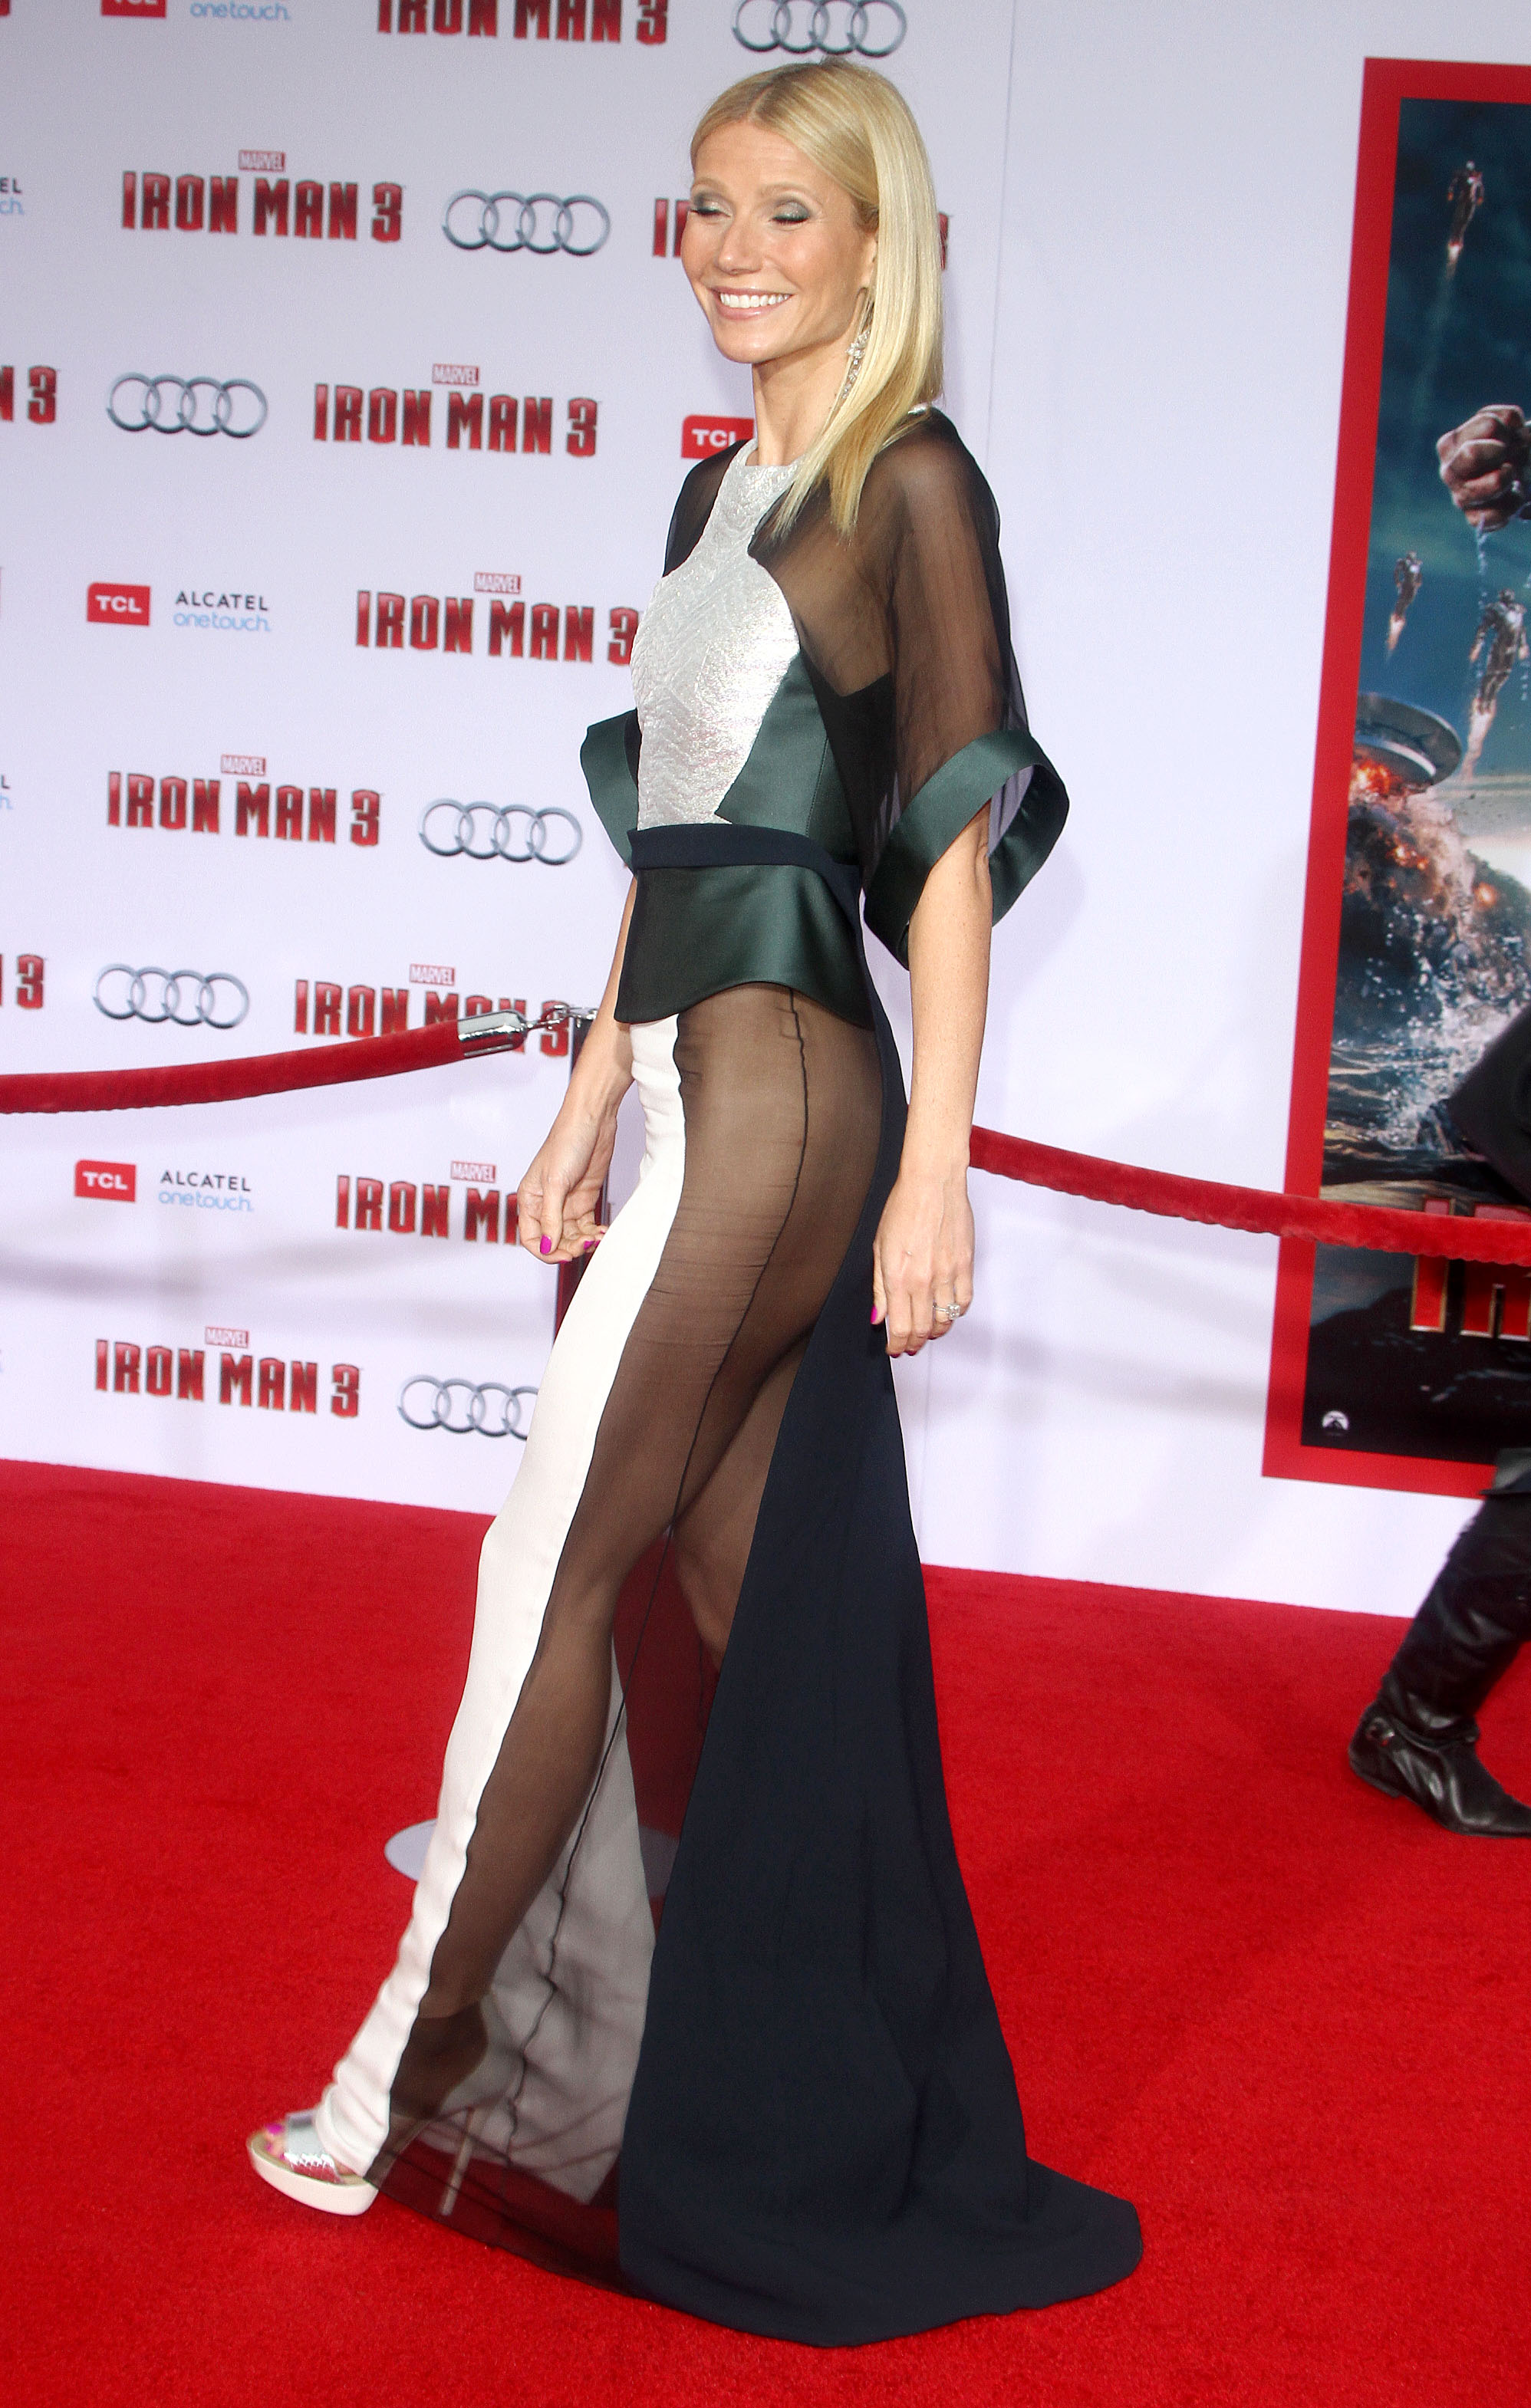 Gwyneth-Paltrow-at-Iron-Man-3-Premiere-1